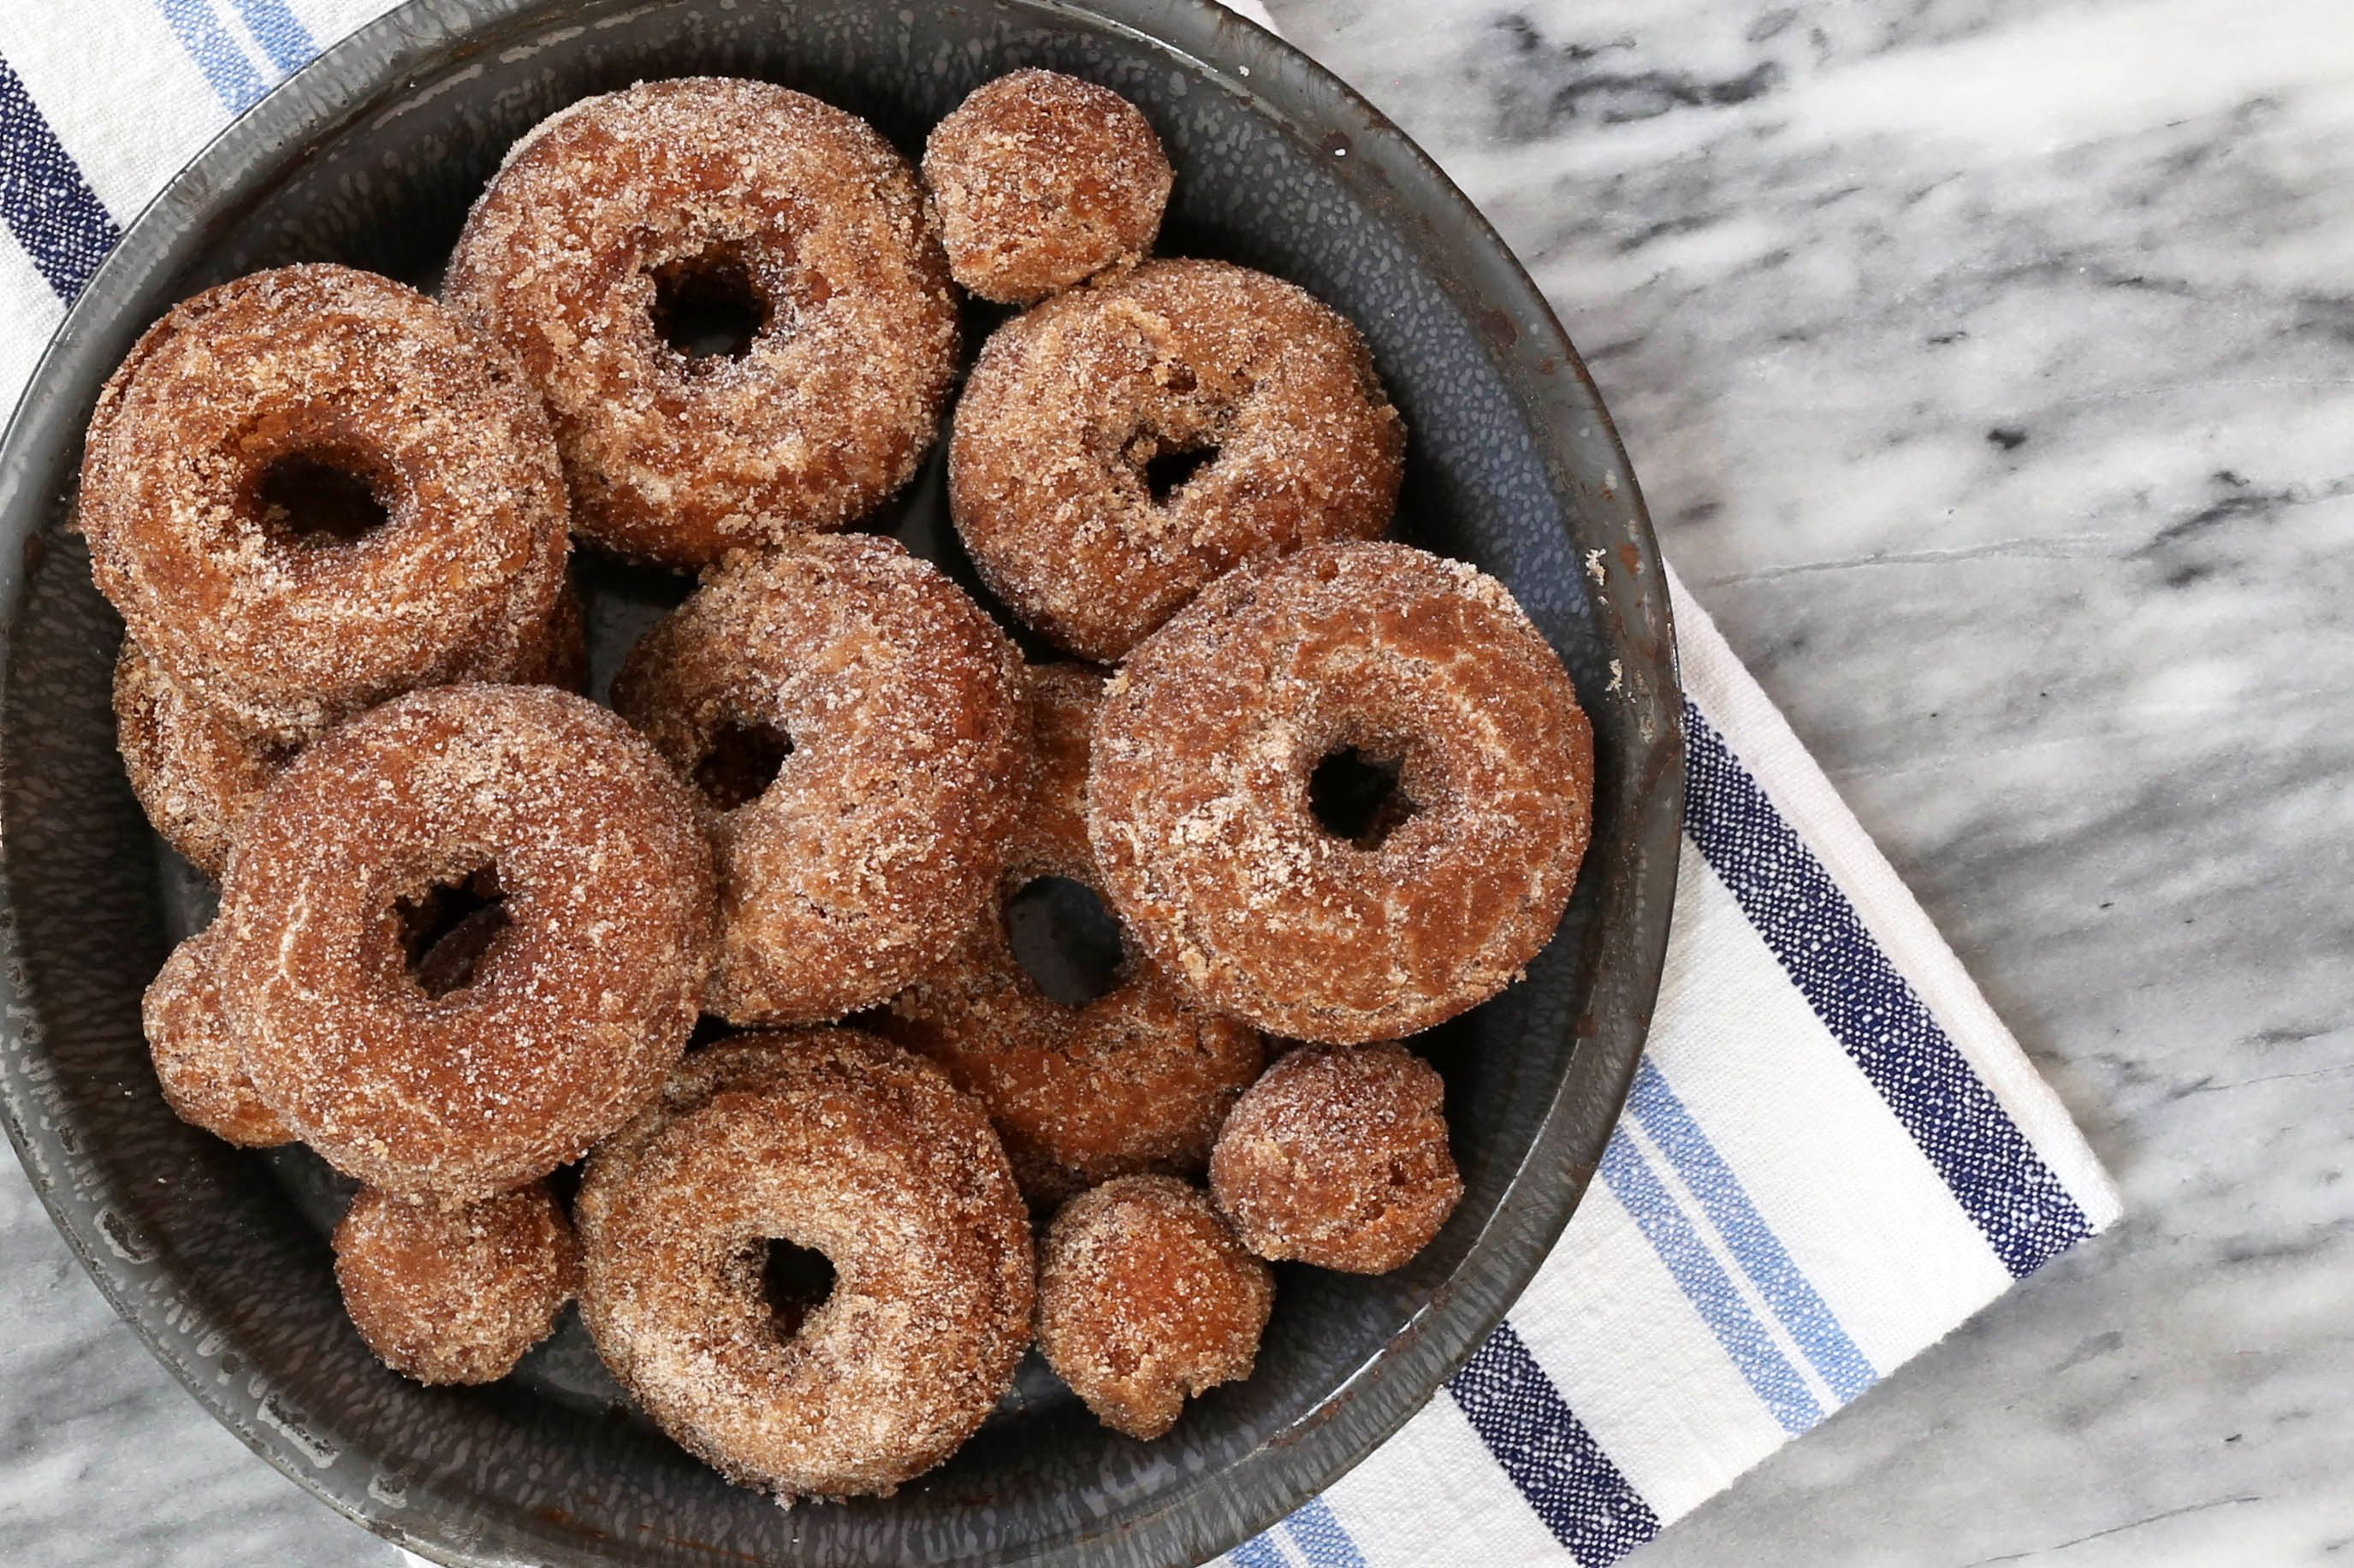 Spoil Your Family With These Apple Cider Donuts